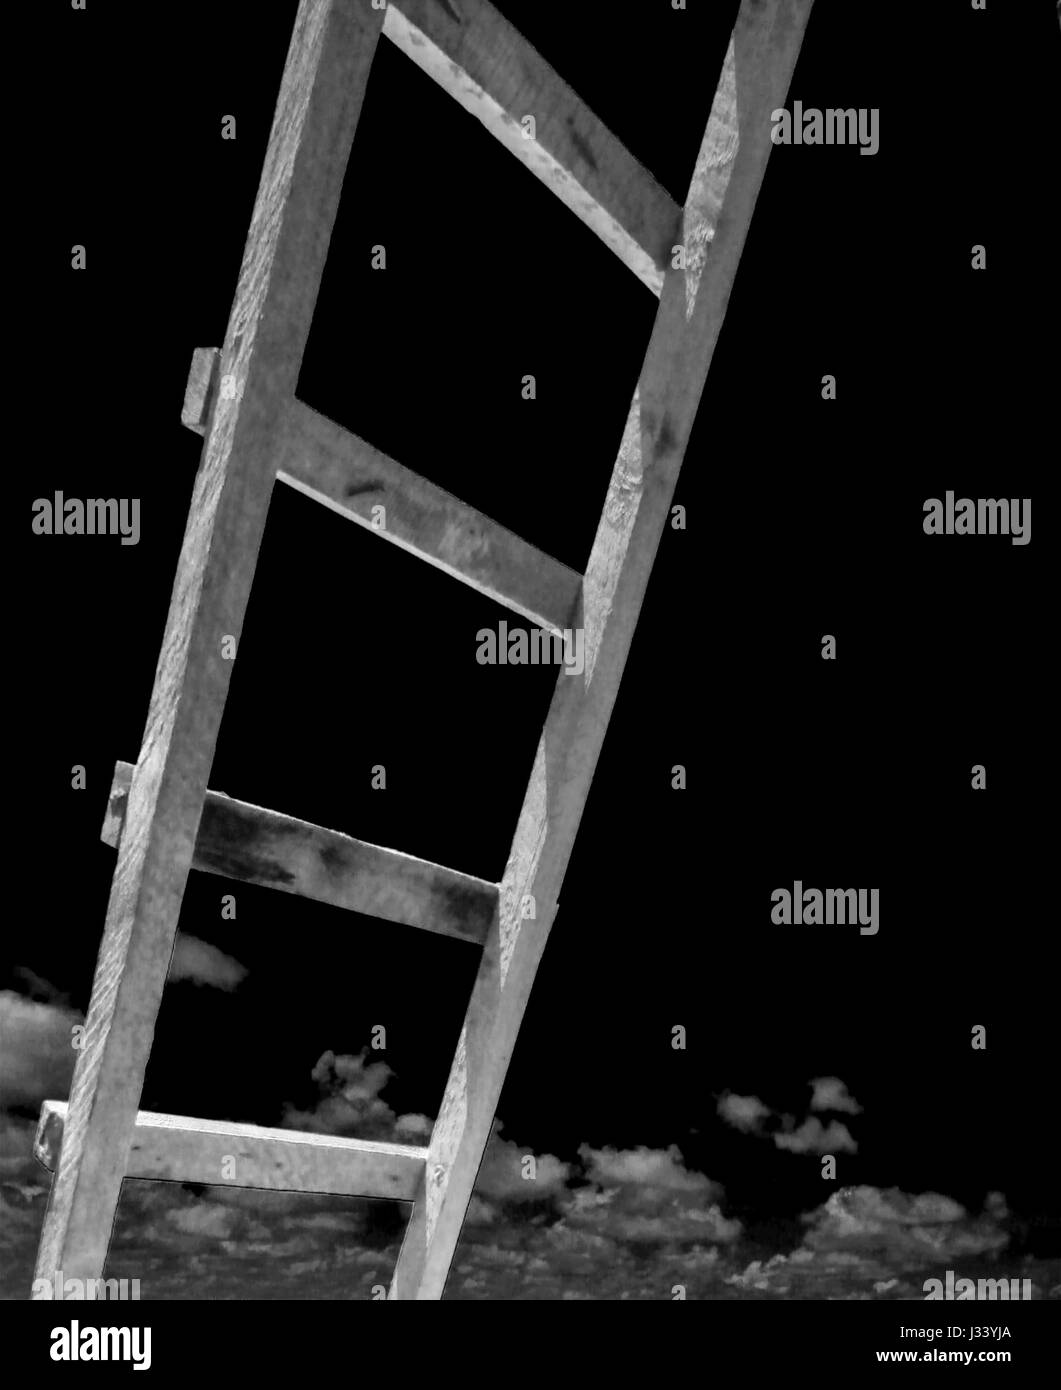 Black and white ladder reaching to the sky - Stock Image